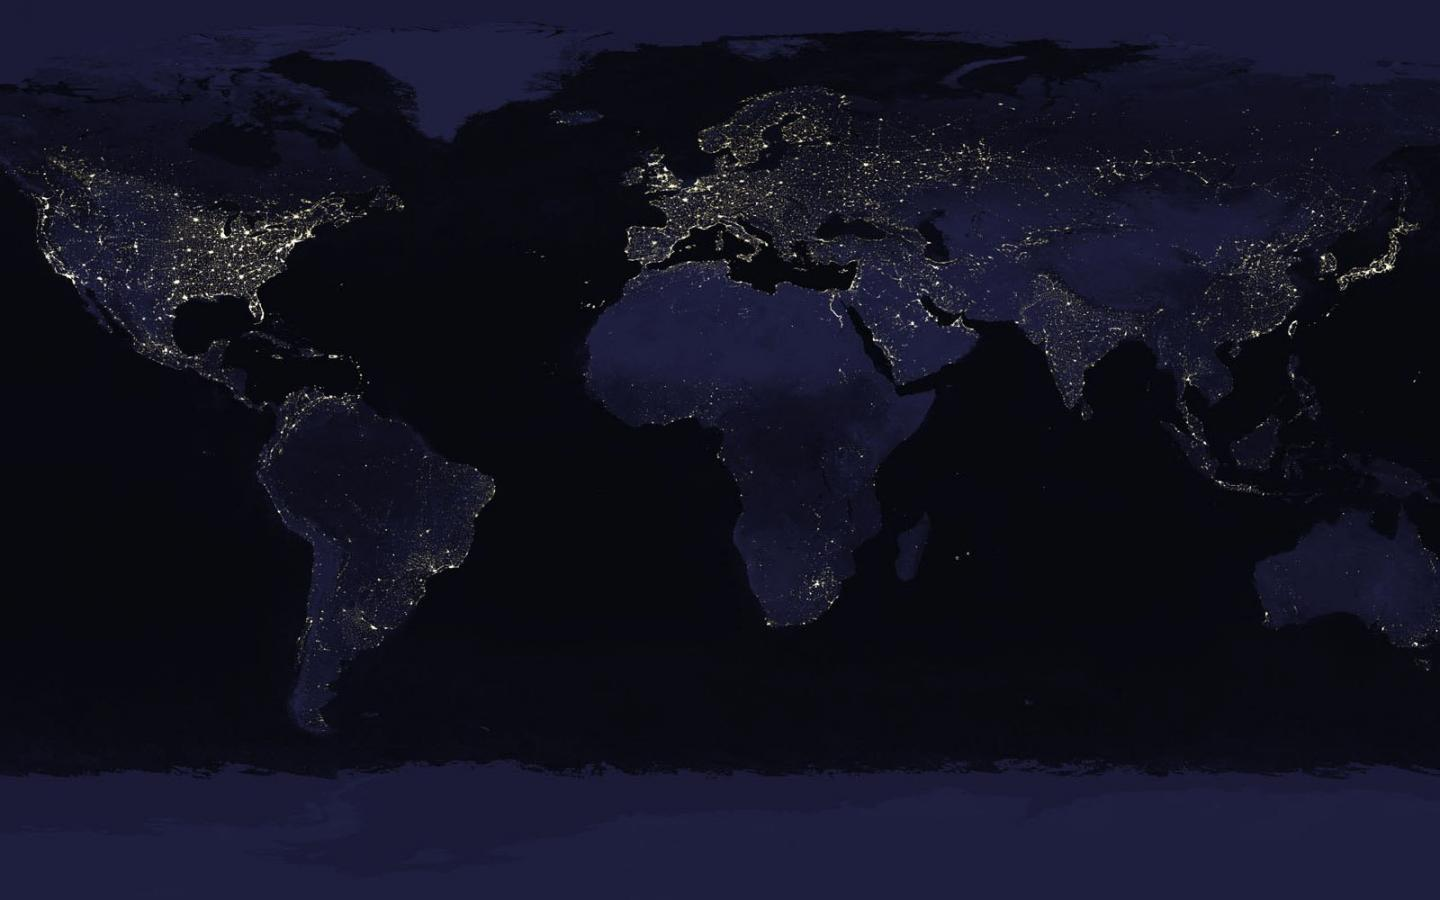 earth at night saw ages ago with what looked mercury HD Wallpaper 1440x900